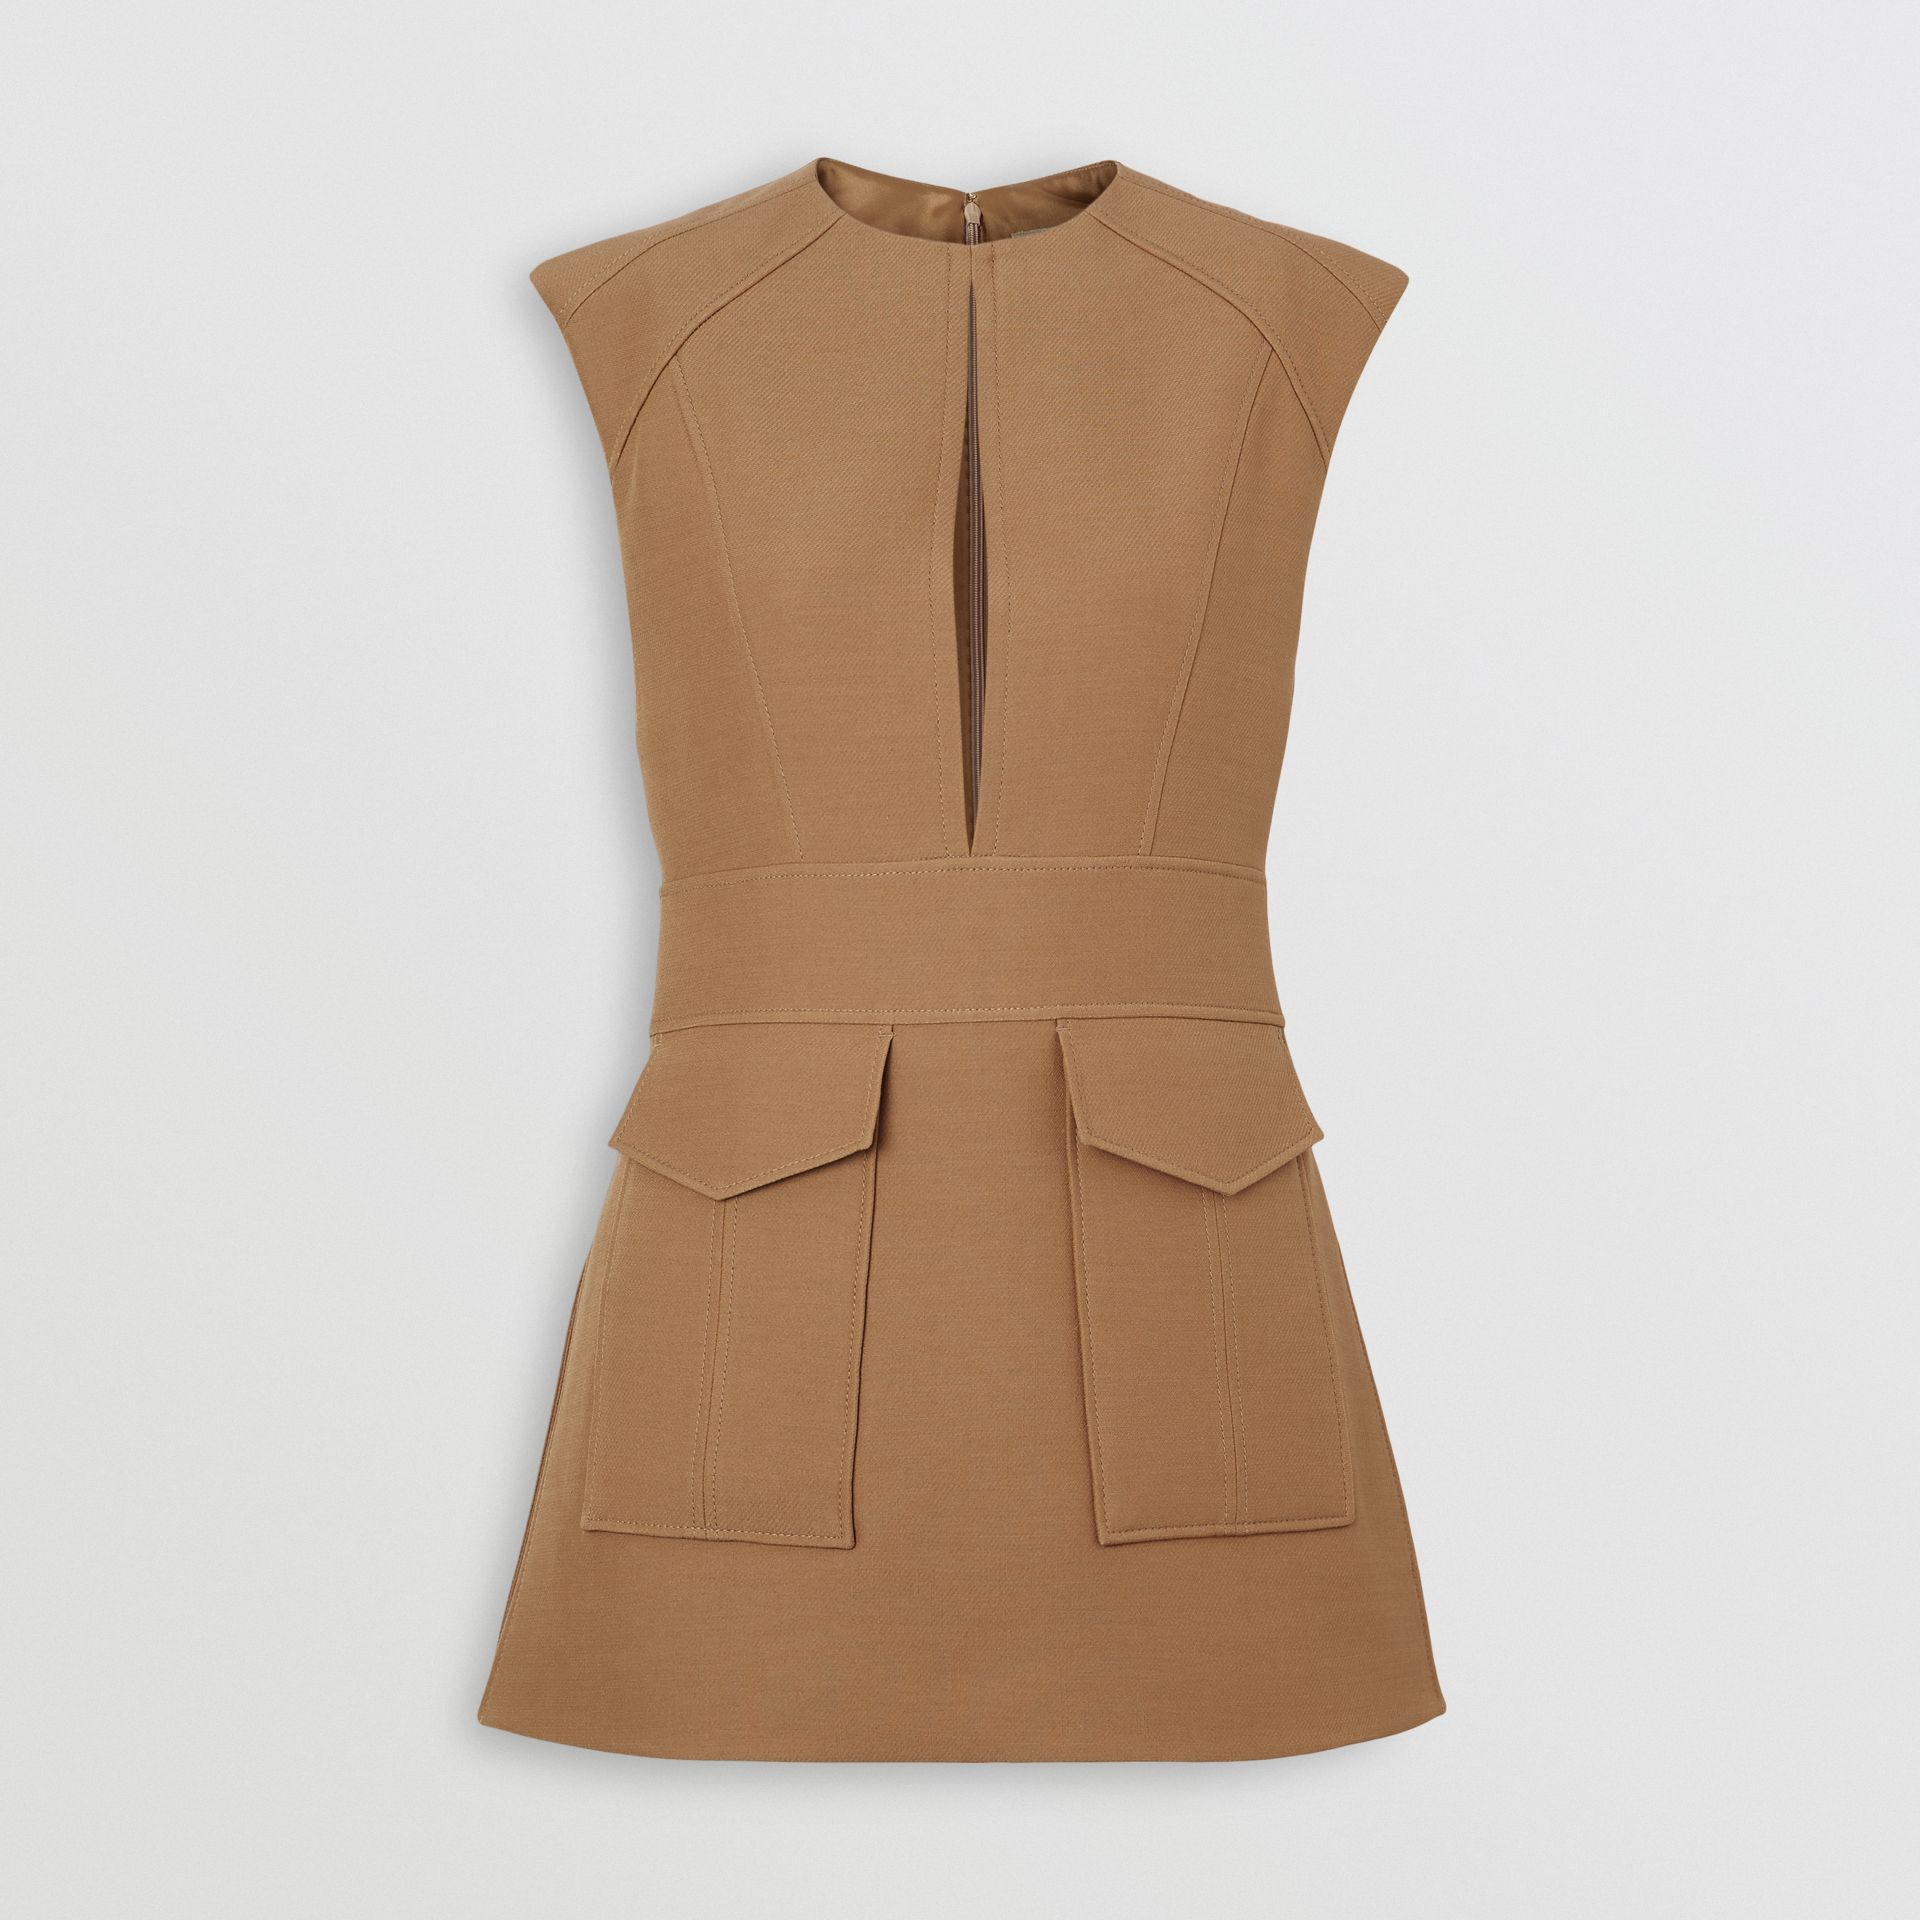 Keyhole Detail Sleeveless Wool Silk Top in Camel - Women | Burberry - gallery image 3